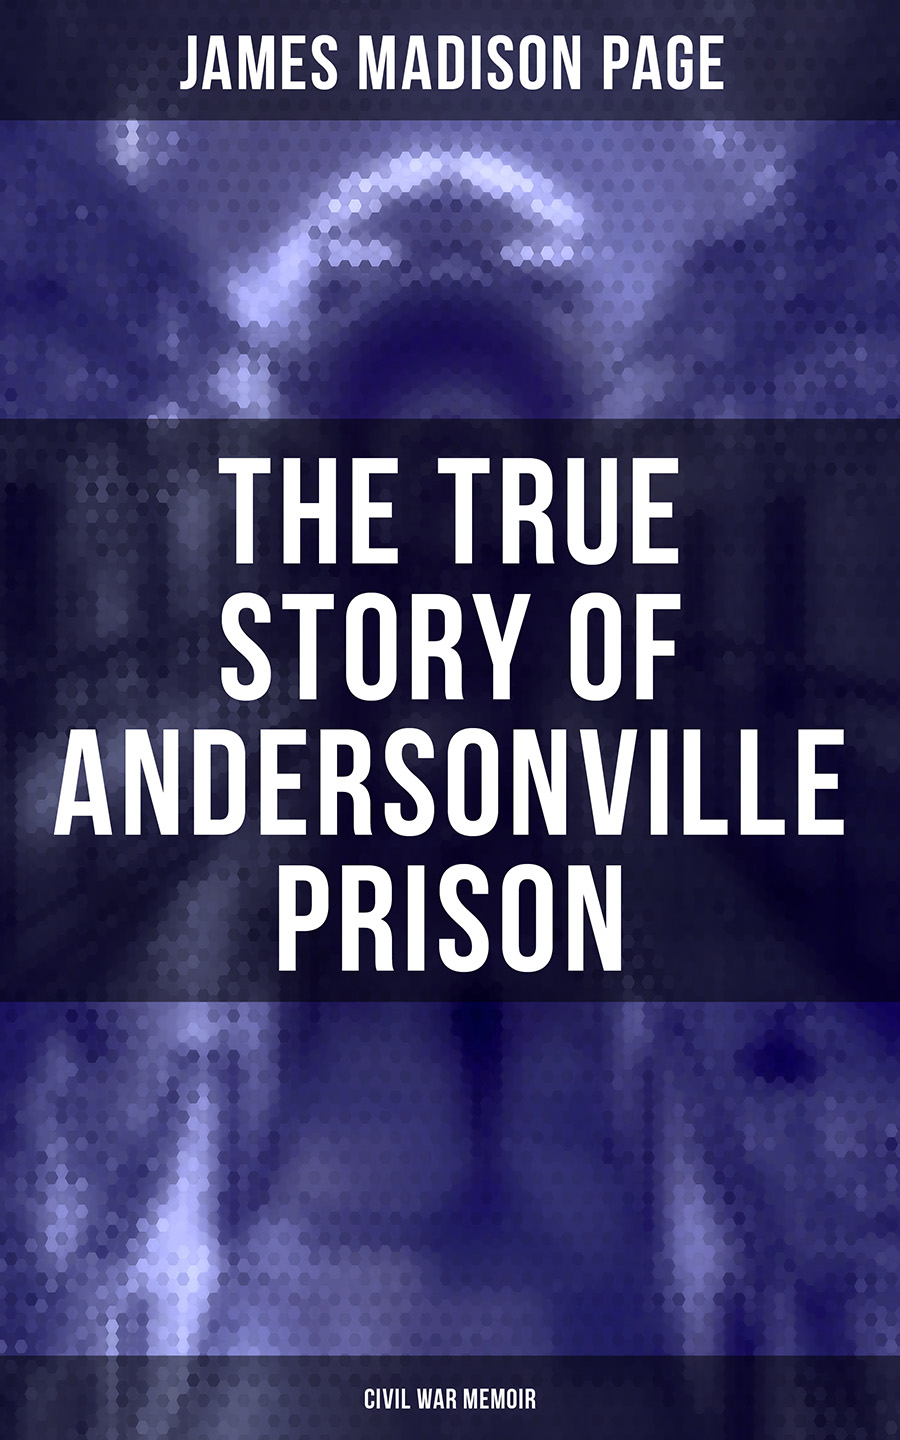 James Madison Page The True Story of Andersonville Prison (Civil War Memoir) kathleen norris the story of julia page